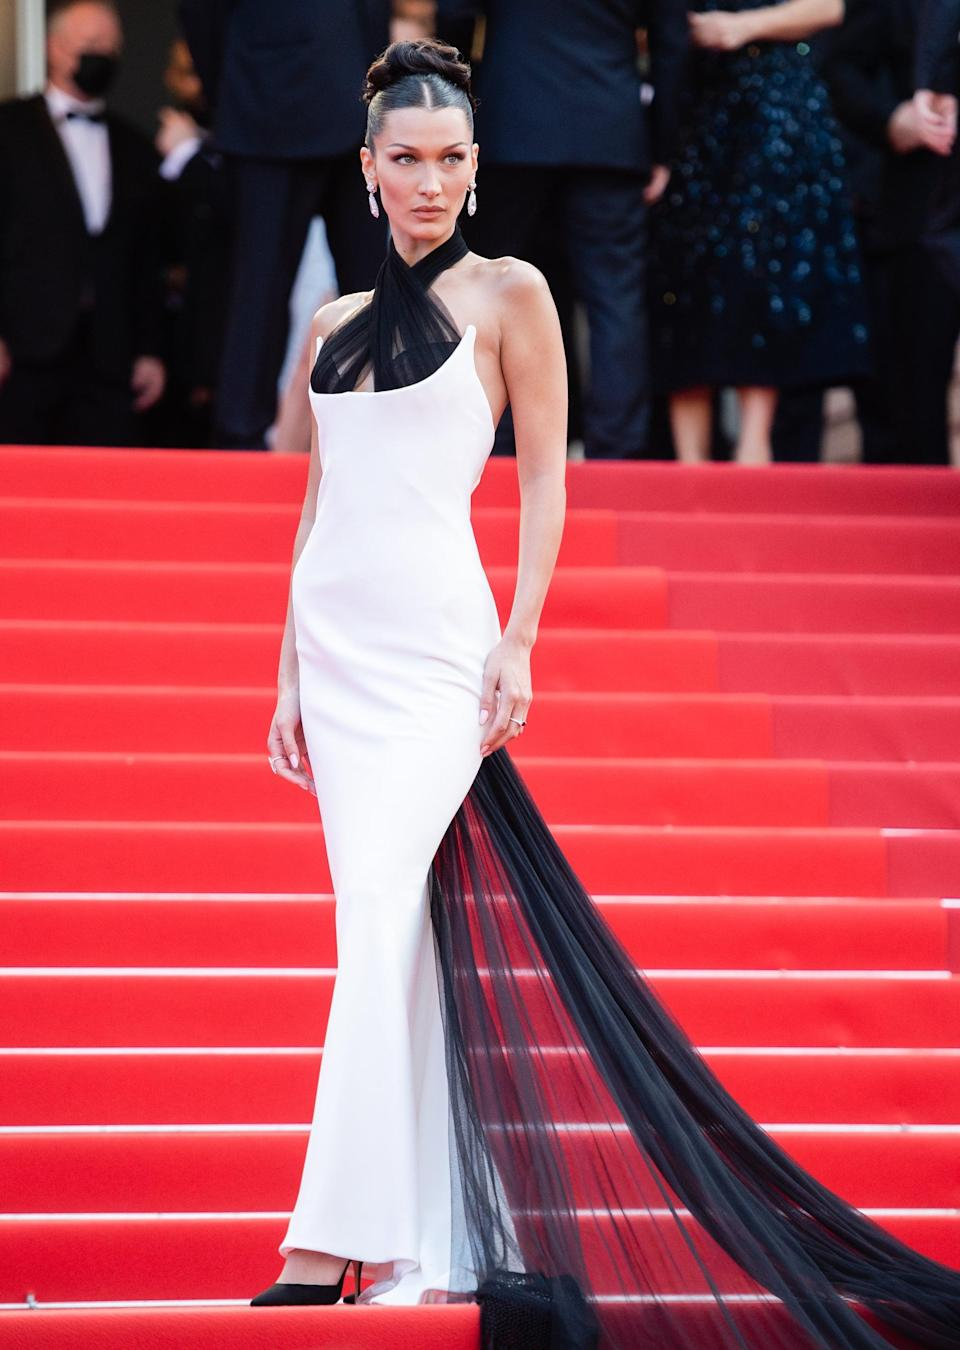 """<p>Weraring <a href=""""https://www.popsugar.com/fashion/bella-hadid-black-white-dress-cannes-2021-48406631"""" class=""""link rapid-noclick-resp"""" rel=""""nofollow noopener"""" target=""""_blank"""" data-ylk=""""slk:a Jean Paul Gaultier piece"""">a Jean Paul Gaultier piece</a> pulled from the archives comes from the label's 2002 Couture collection.</p>"""